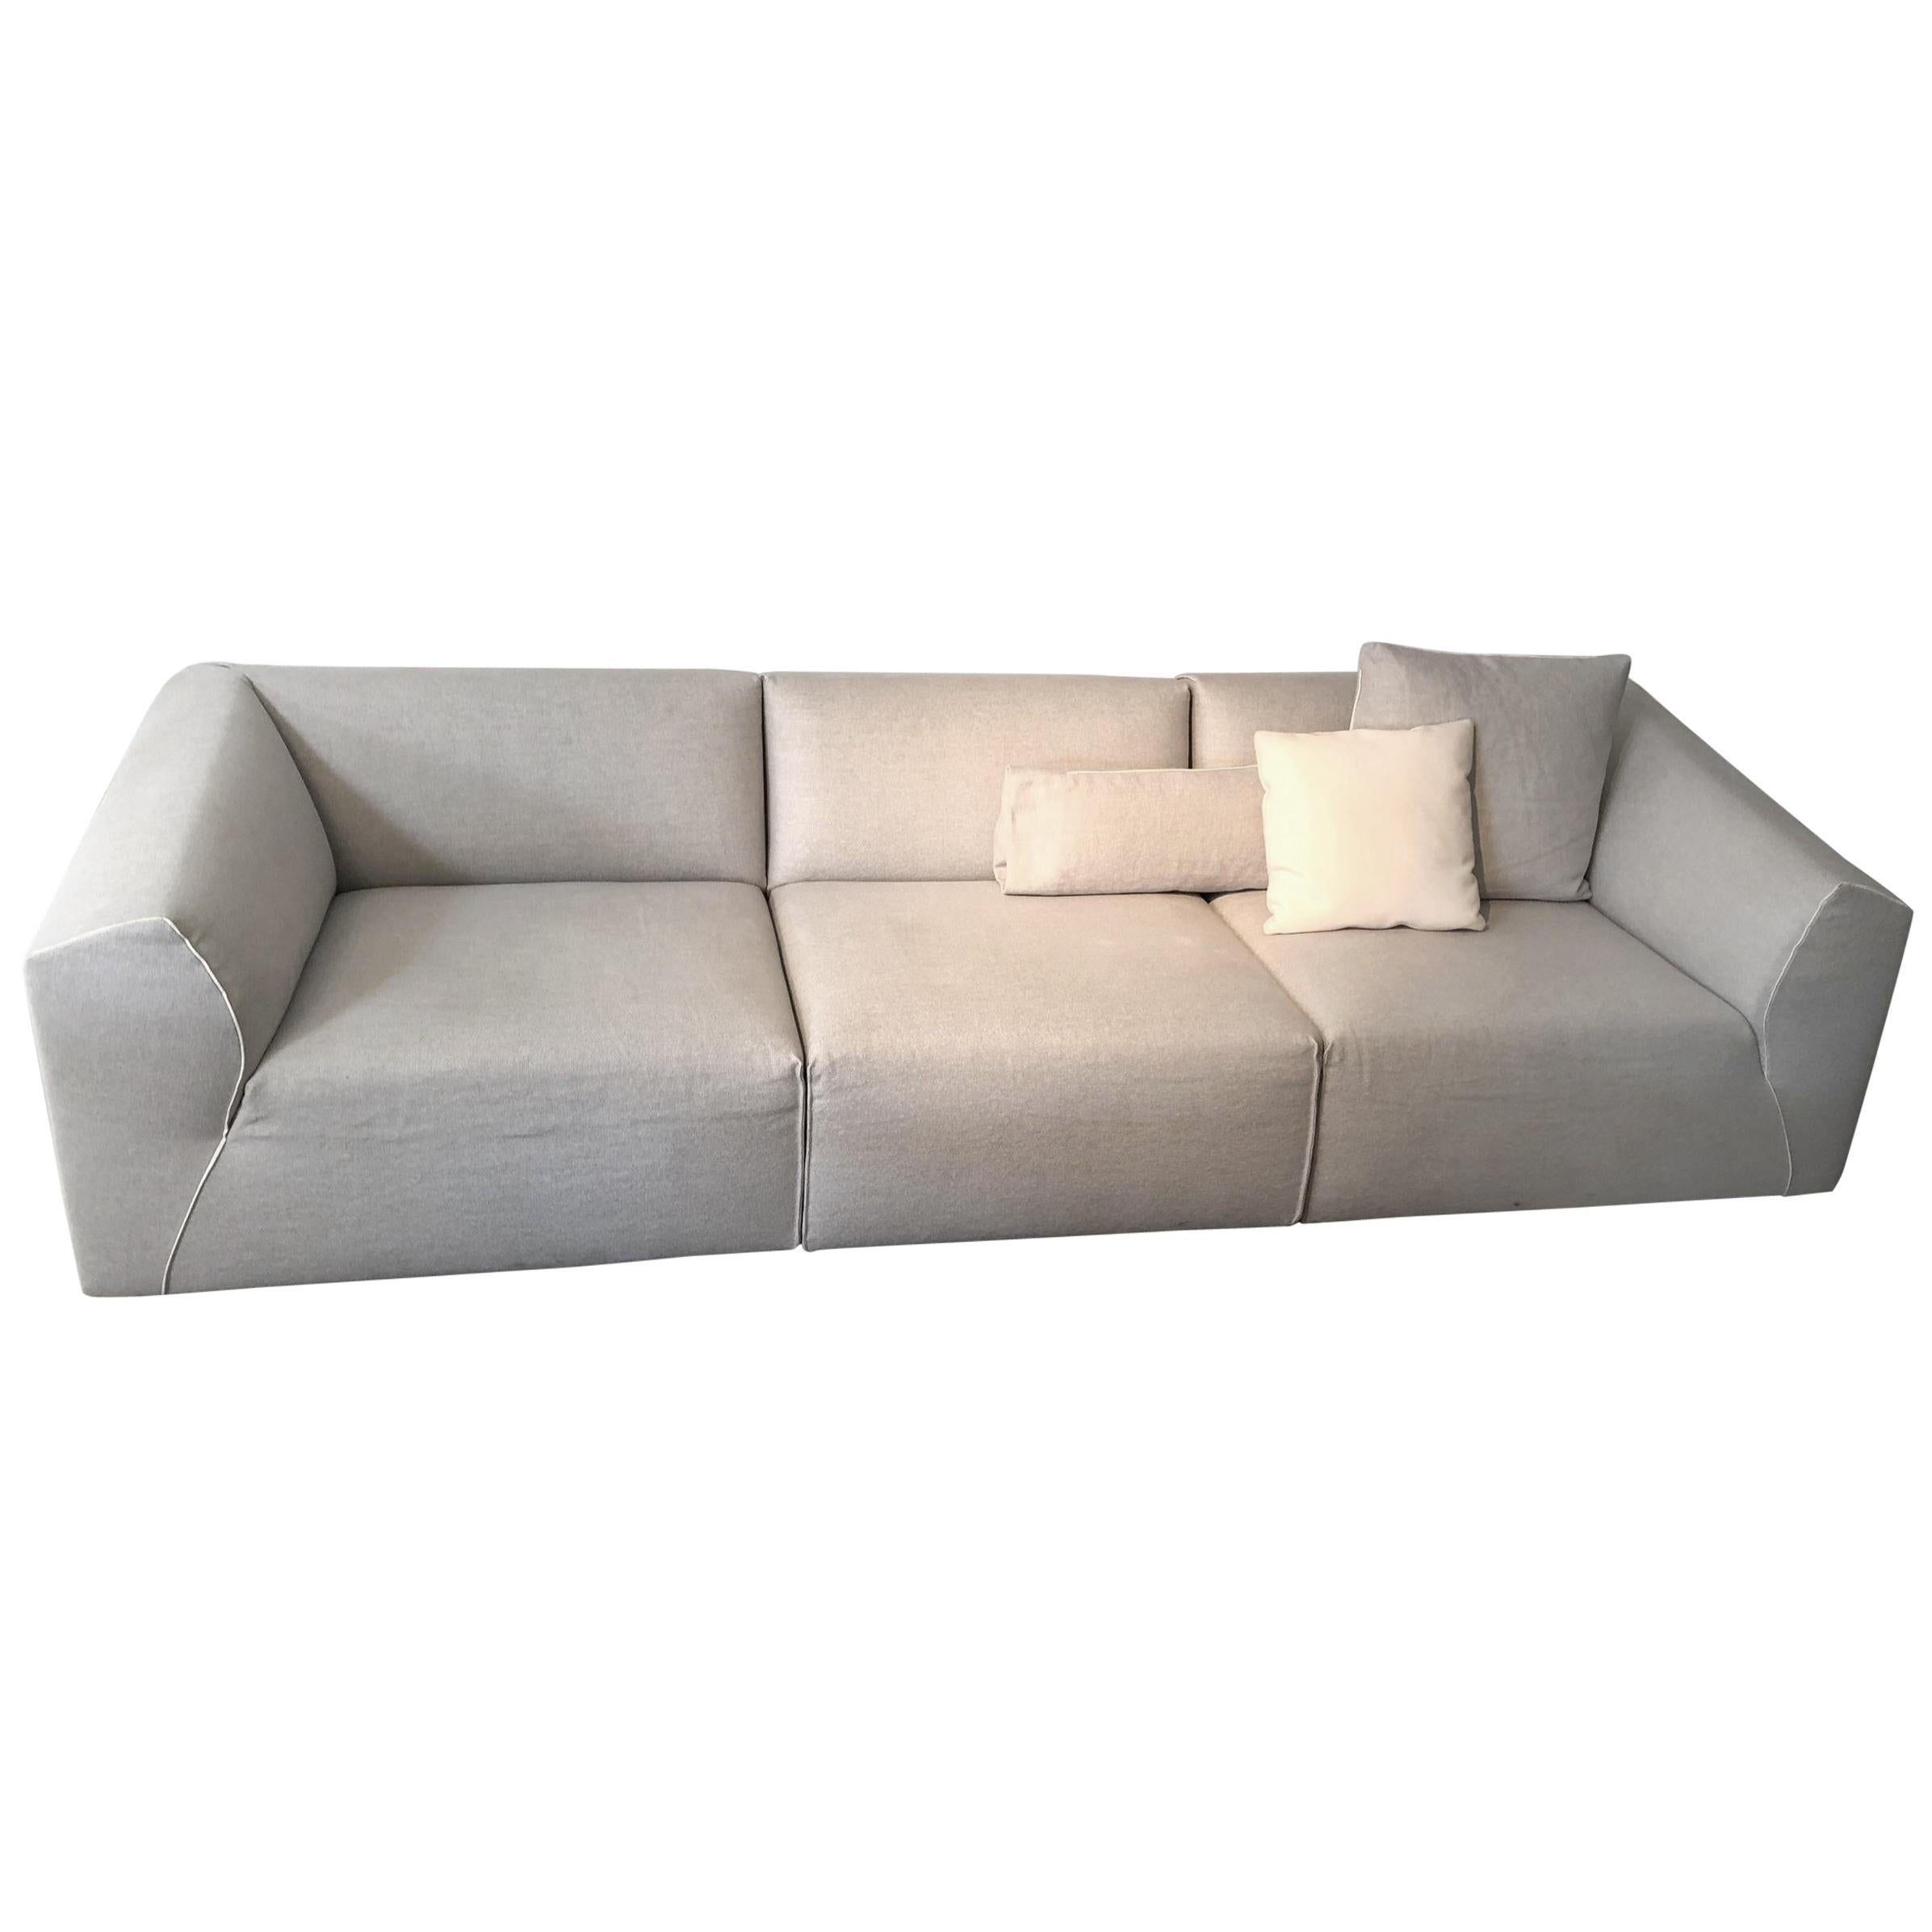 Stupendous 3 Seat Modular Sofa Couch And Ottoman Light Grey And White Gmtry Best Dining Table And Chair Ideas Images Gmtryco